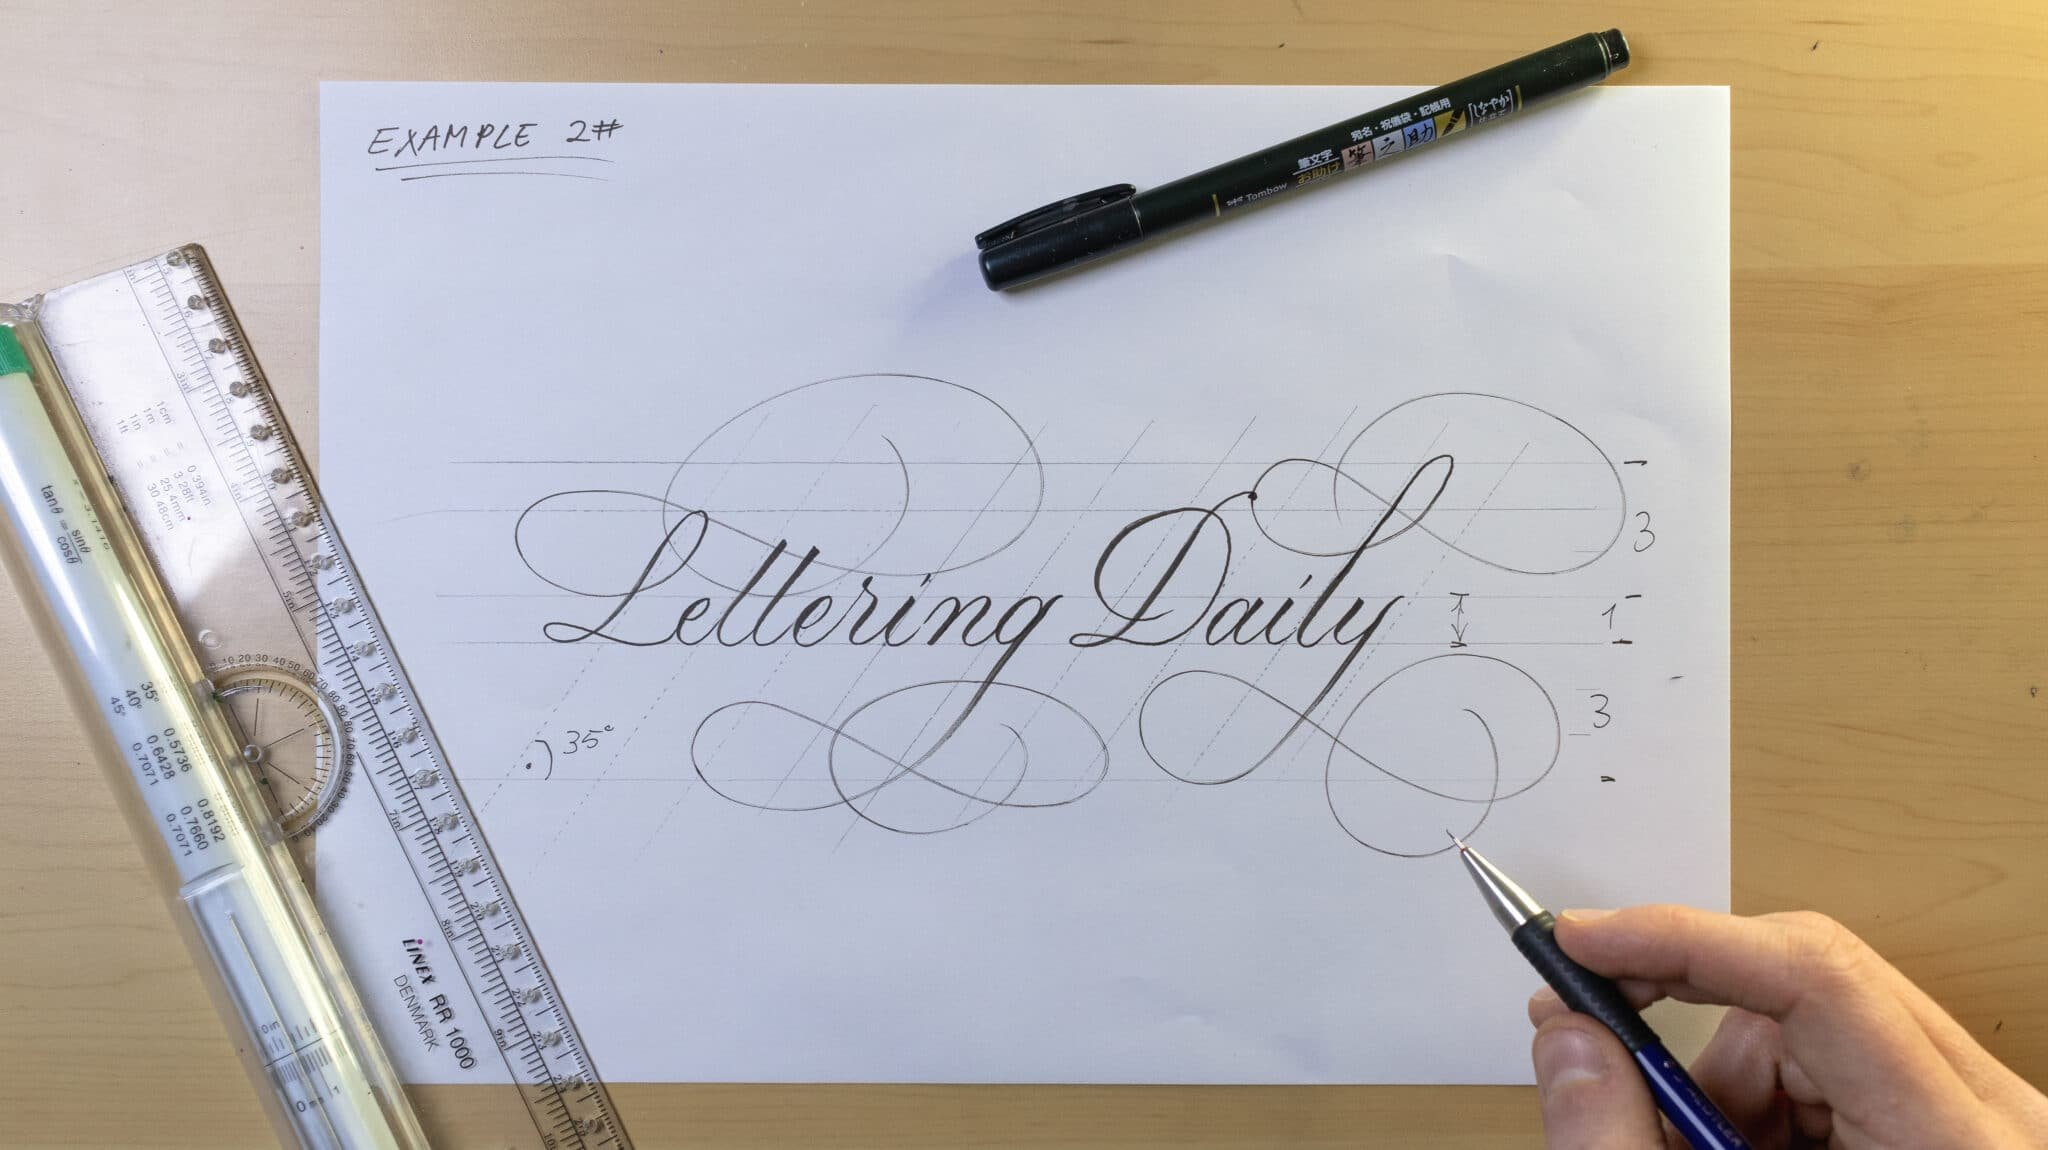 How To Make Calligraphy Guidelines Image 10 - Lettering Daily